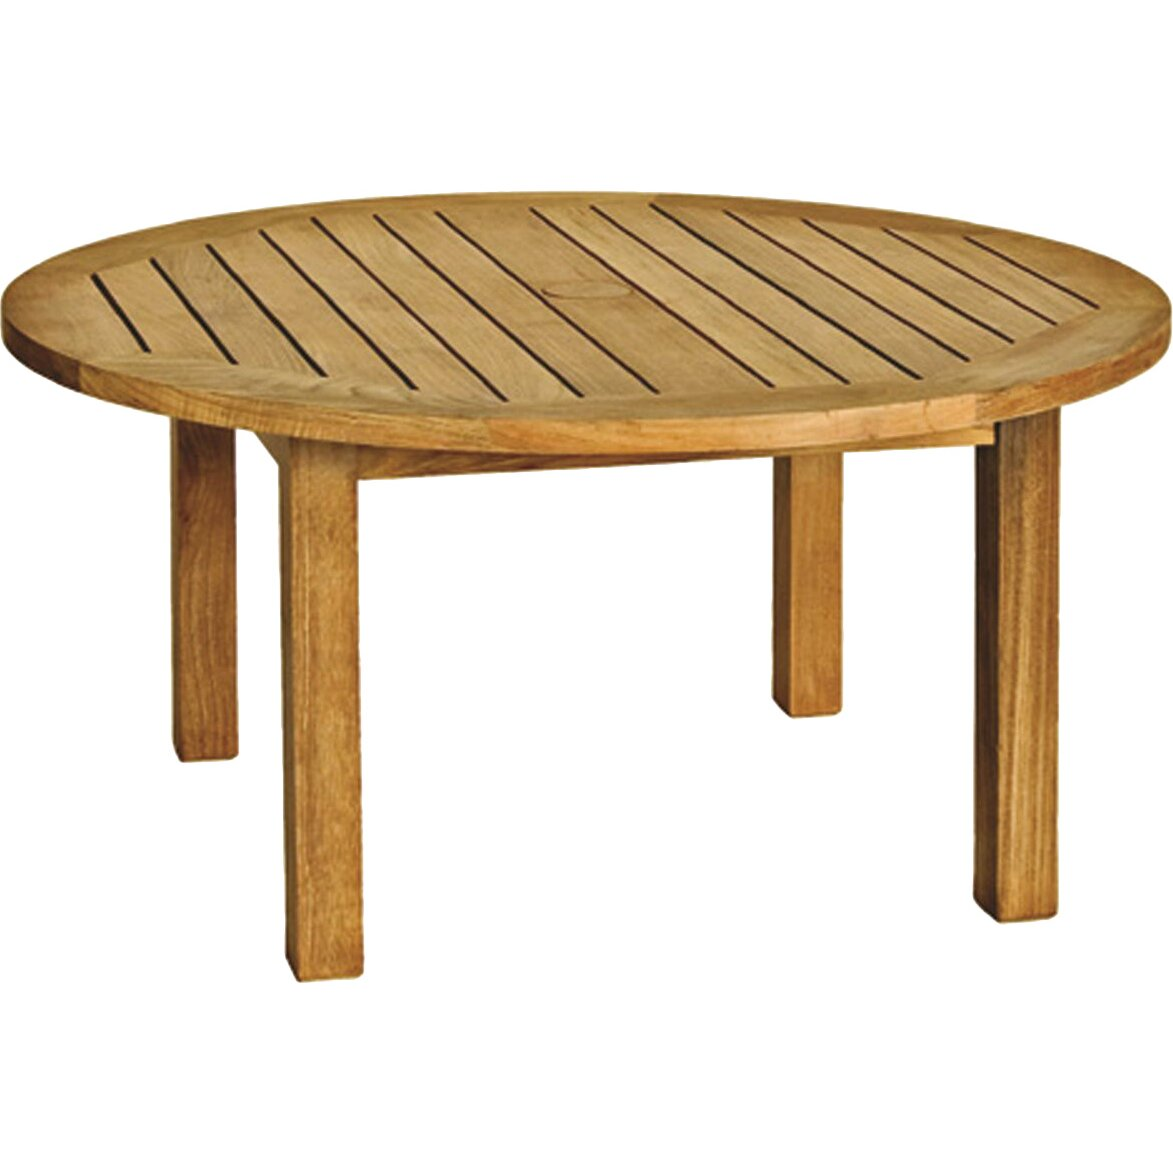 Vintage Casual Coffee Tables: Canterbury Round Coffee Table